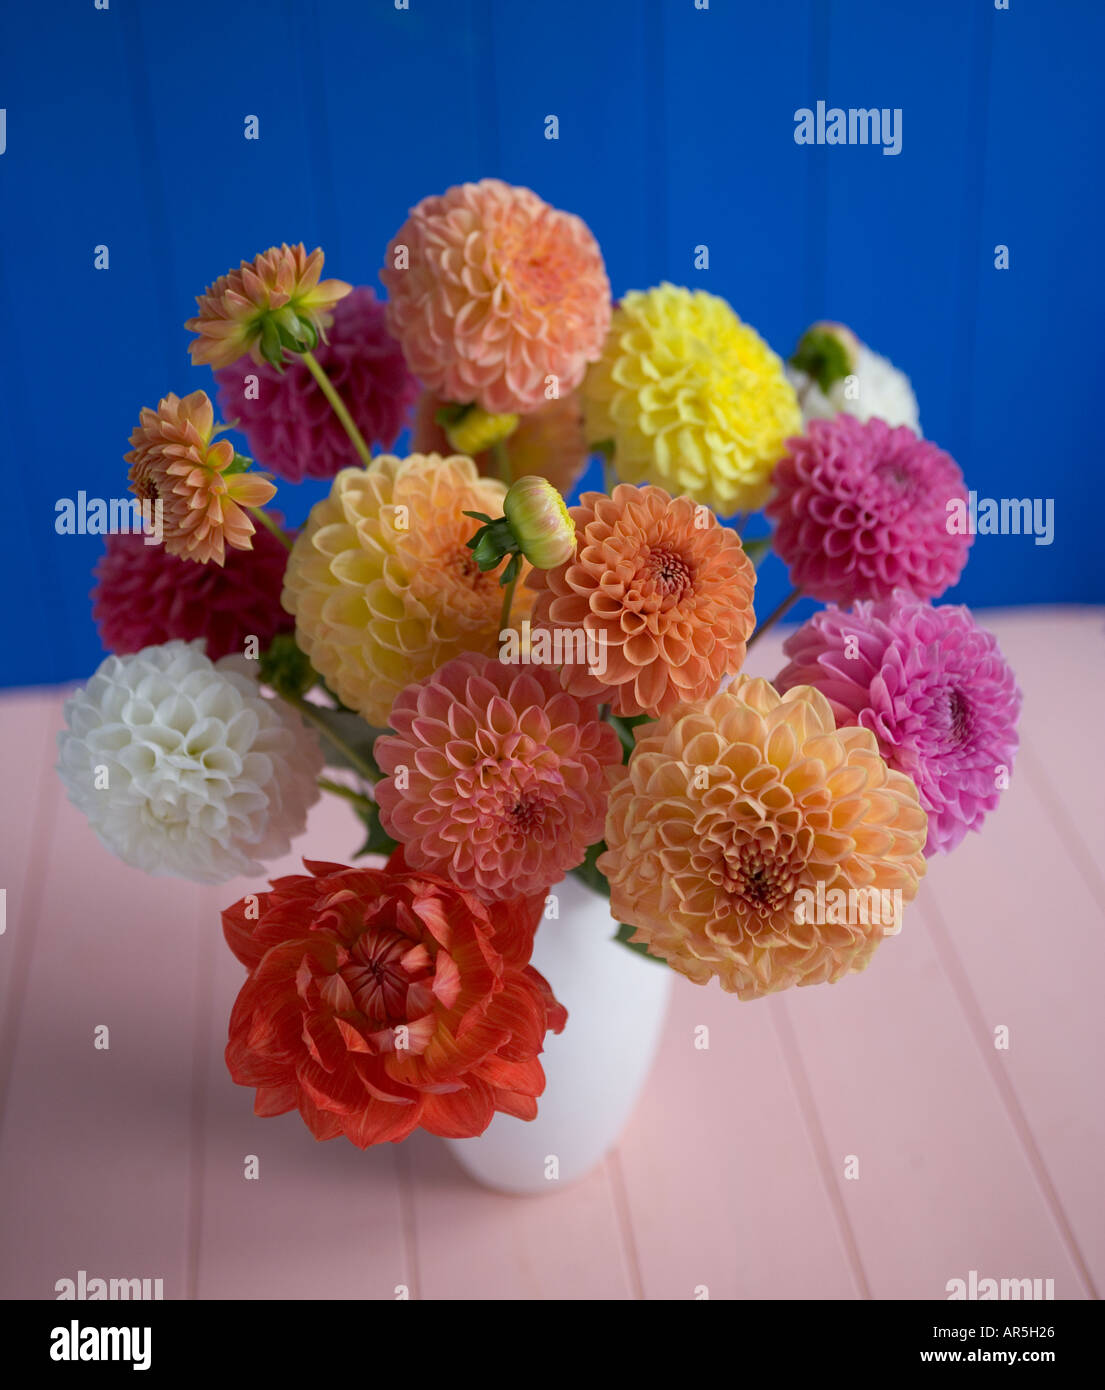 Dahlia flower arrangement stock photo 5205285 alamy dahlia flower arrangement izmirmasajfo